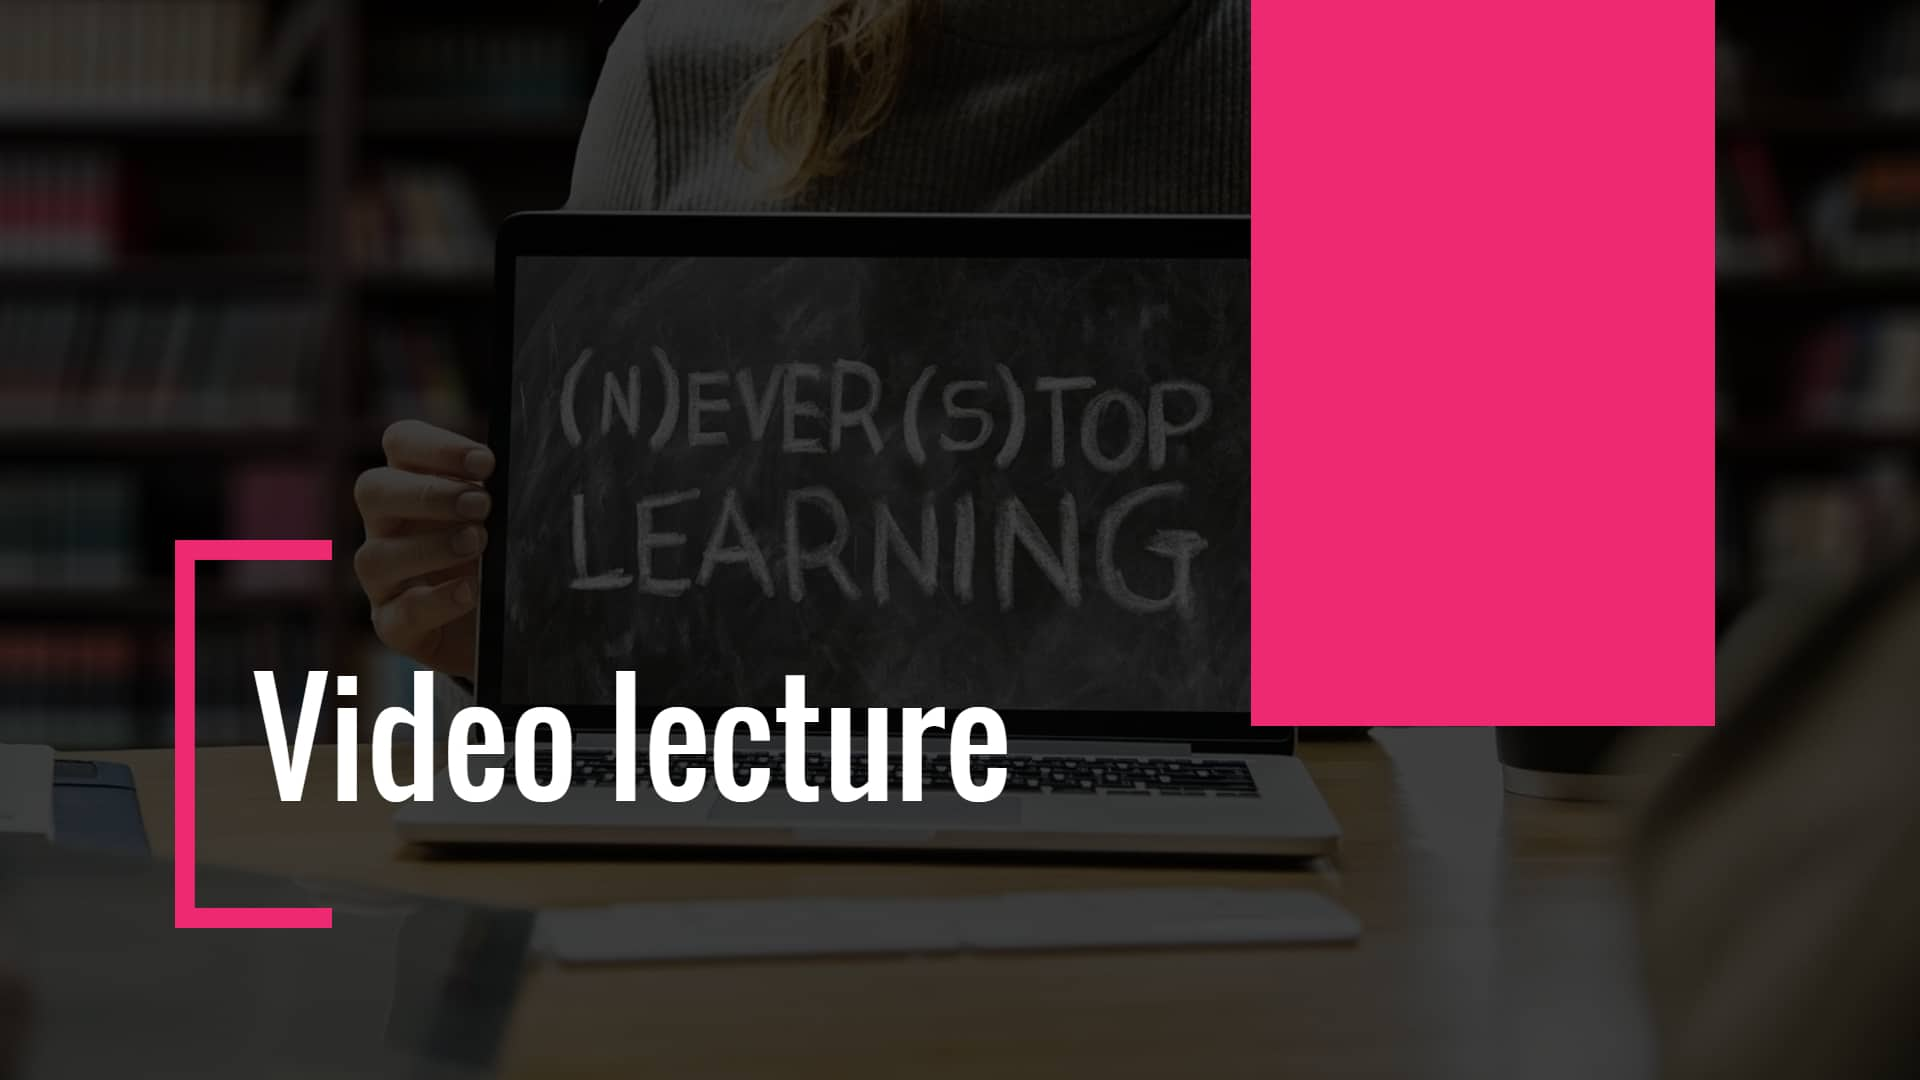 Video lecture